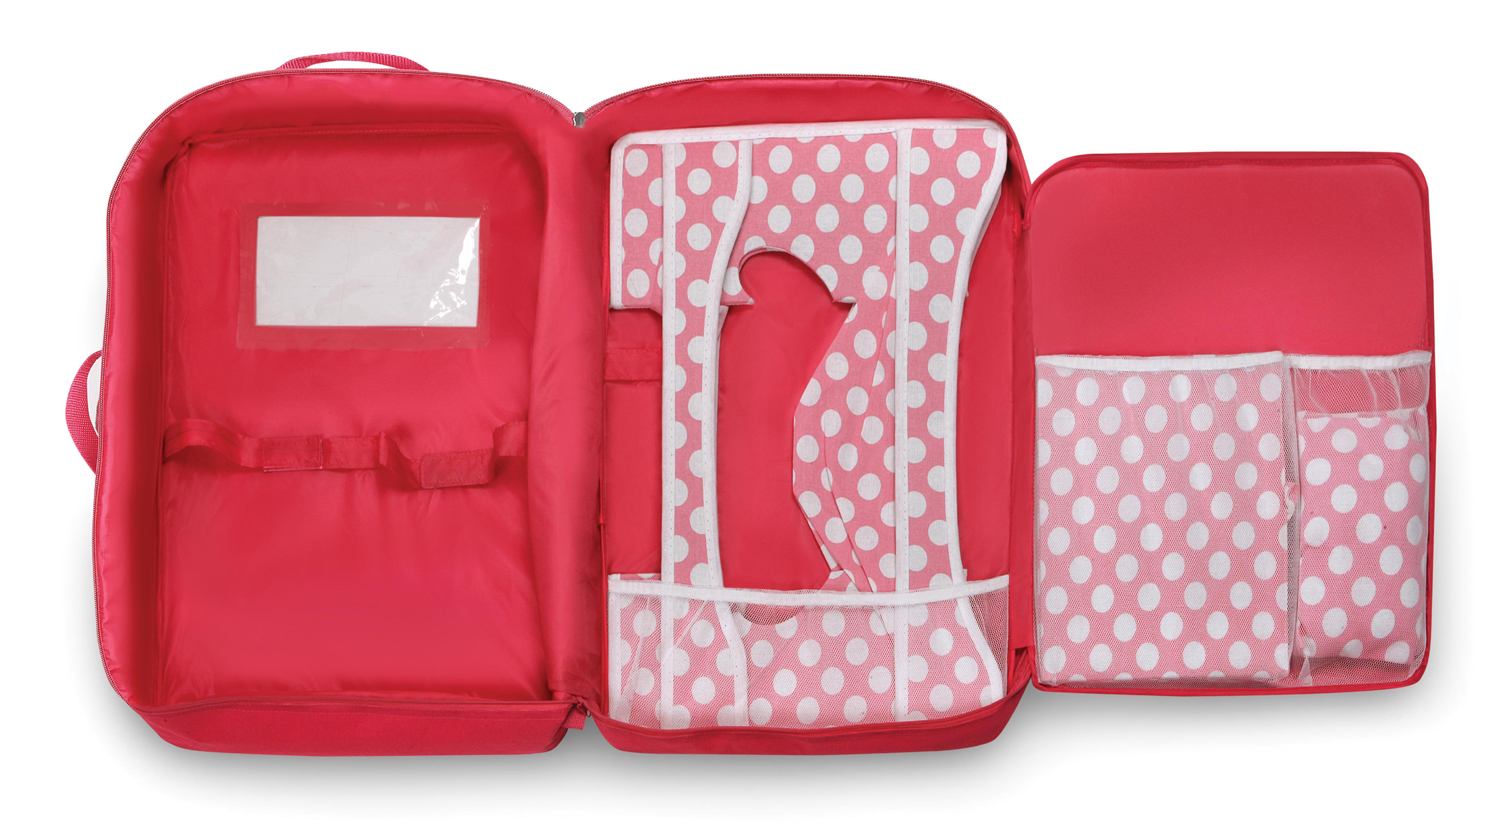 Doll Furniture For 18 Inch Dolls Double Doll Carrier for 18 inch American Girl Dolls – $75